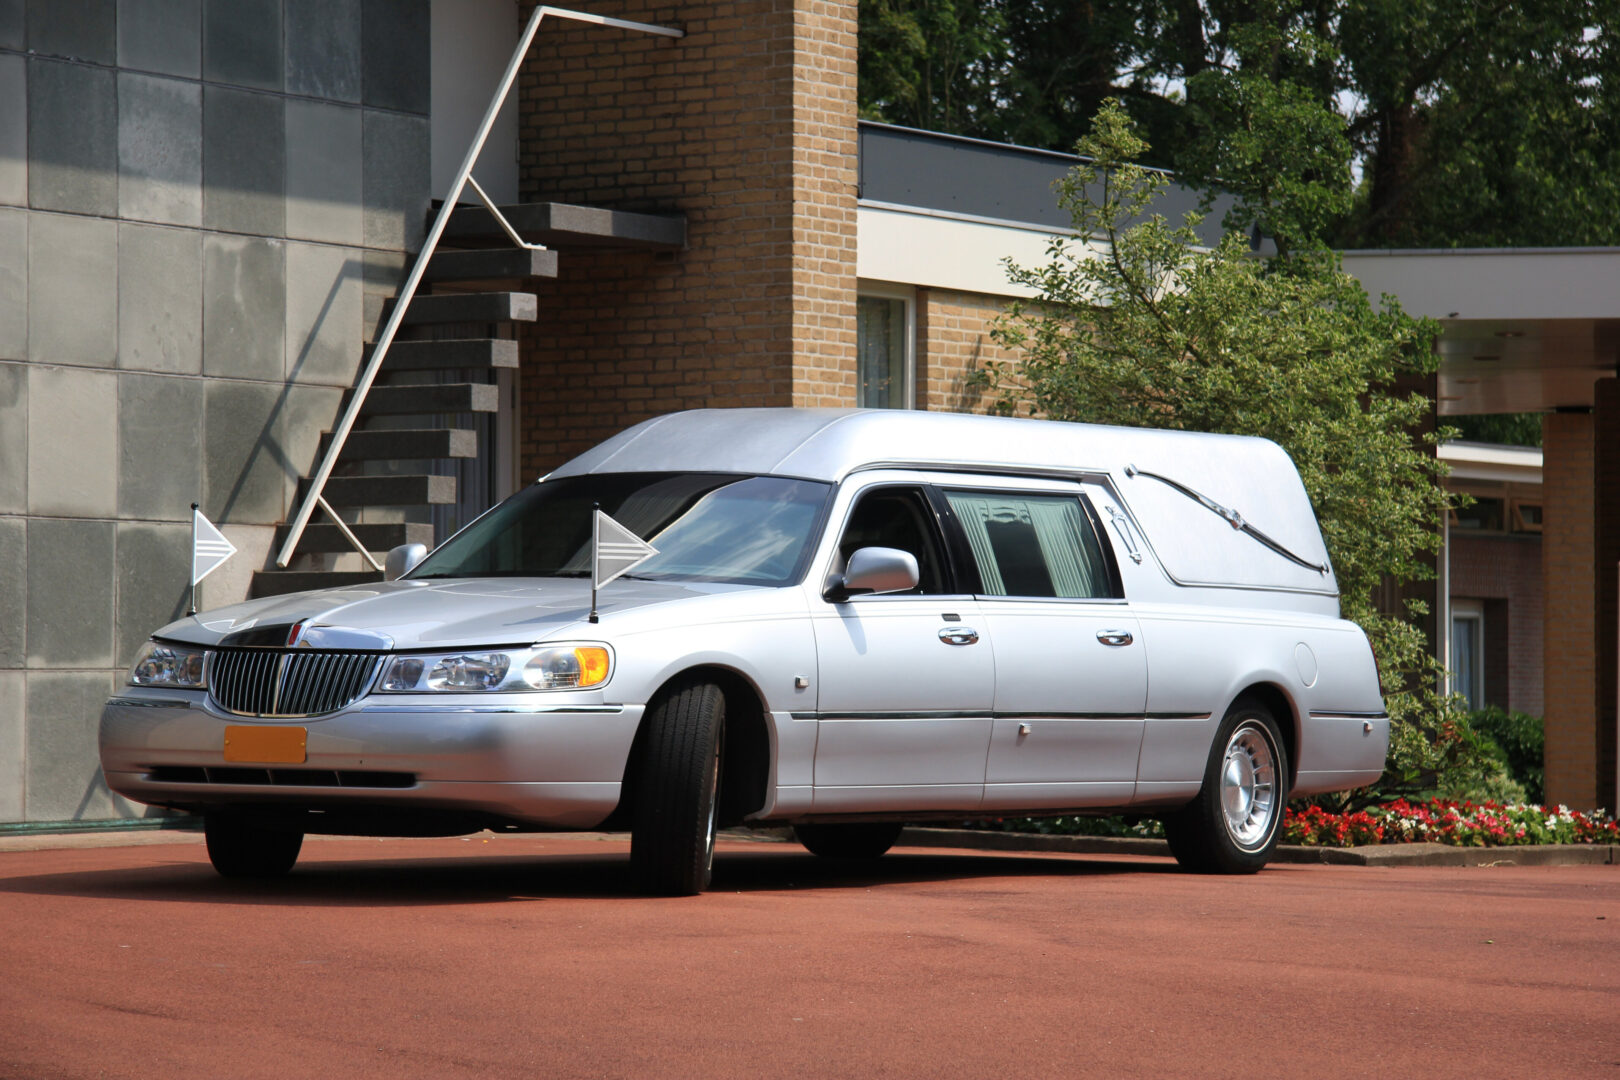 parked white funeral hearse